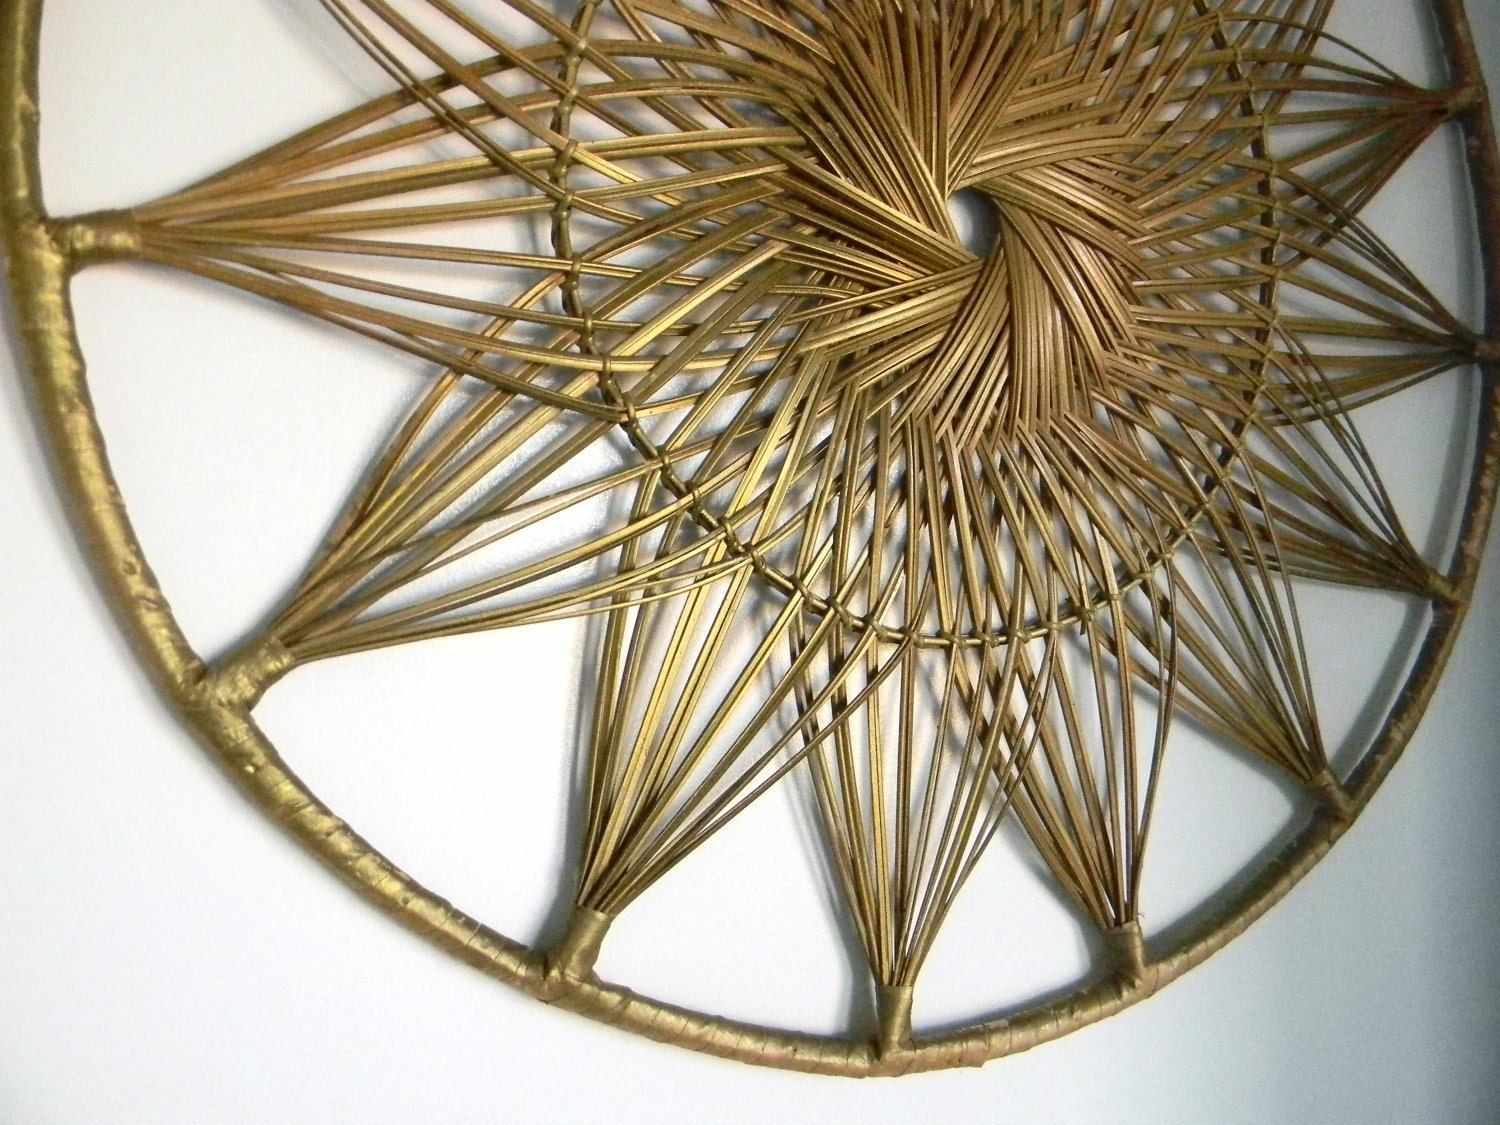 Rattan Wall Decor Round : Vintage woven sunburst wall hanging decor wood round by